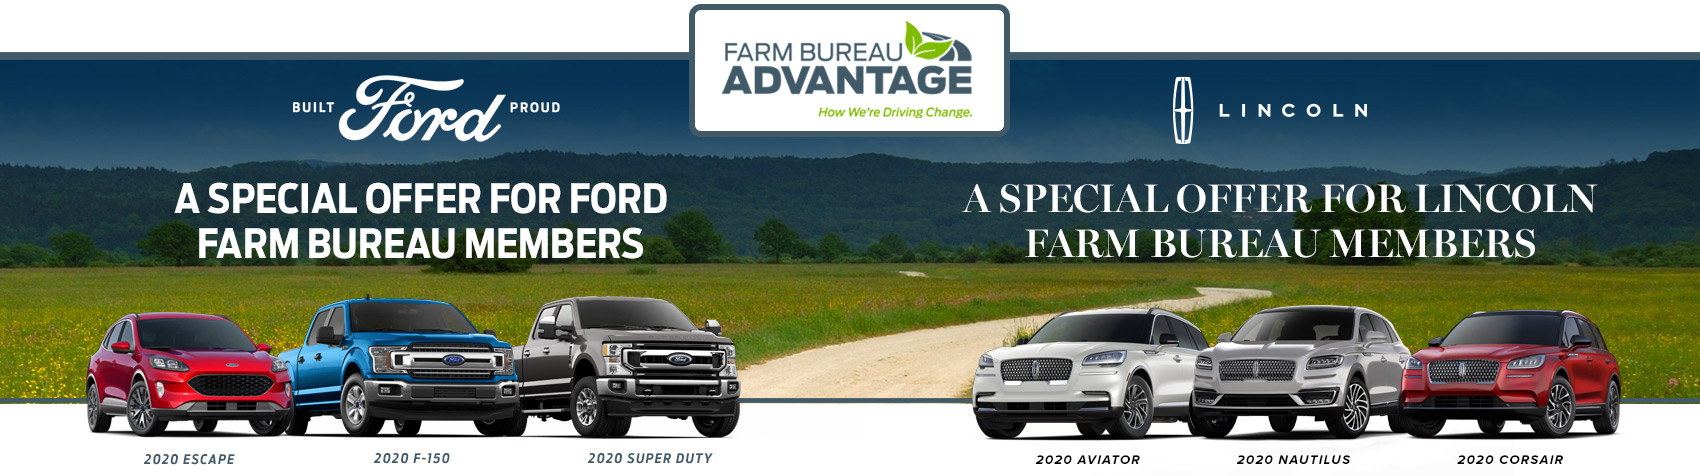 Farm Bureau Advantage. How we're driving change.